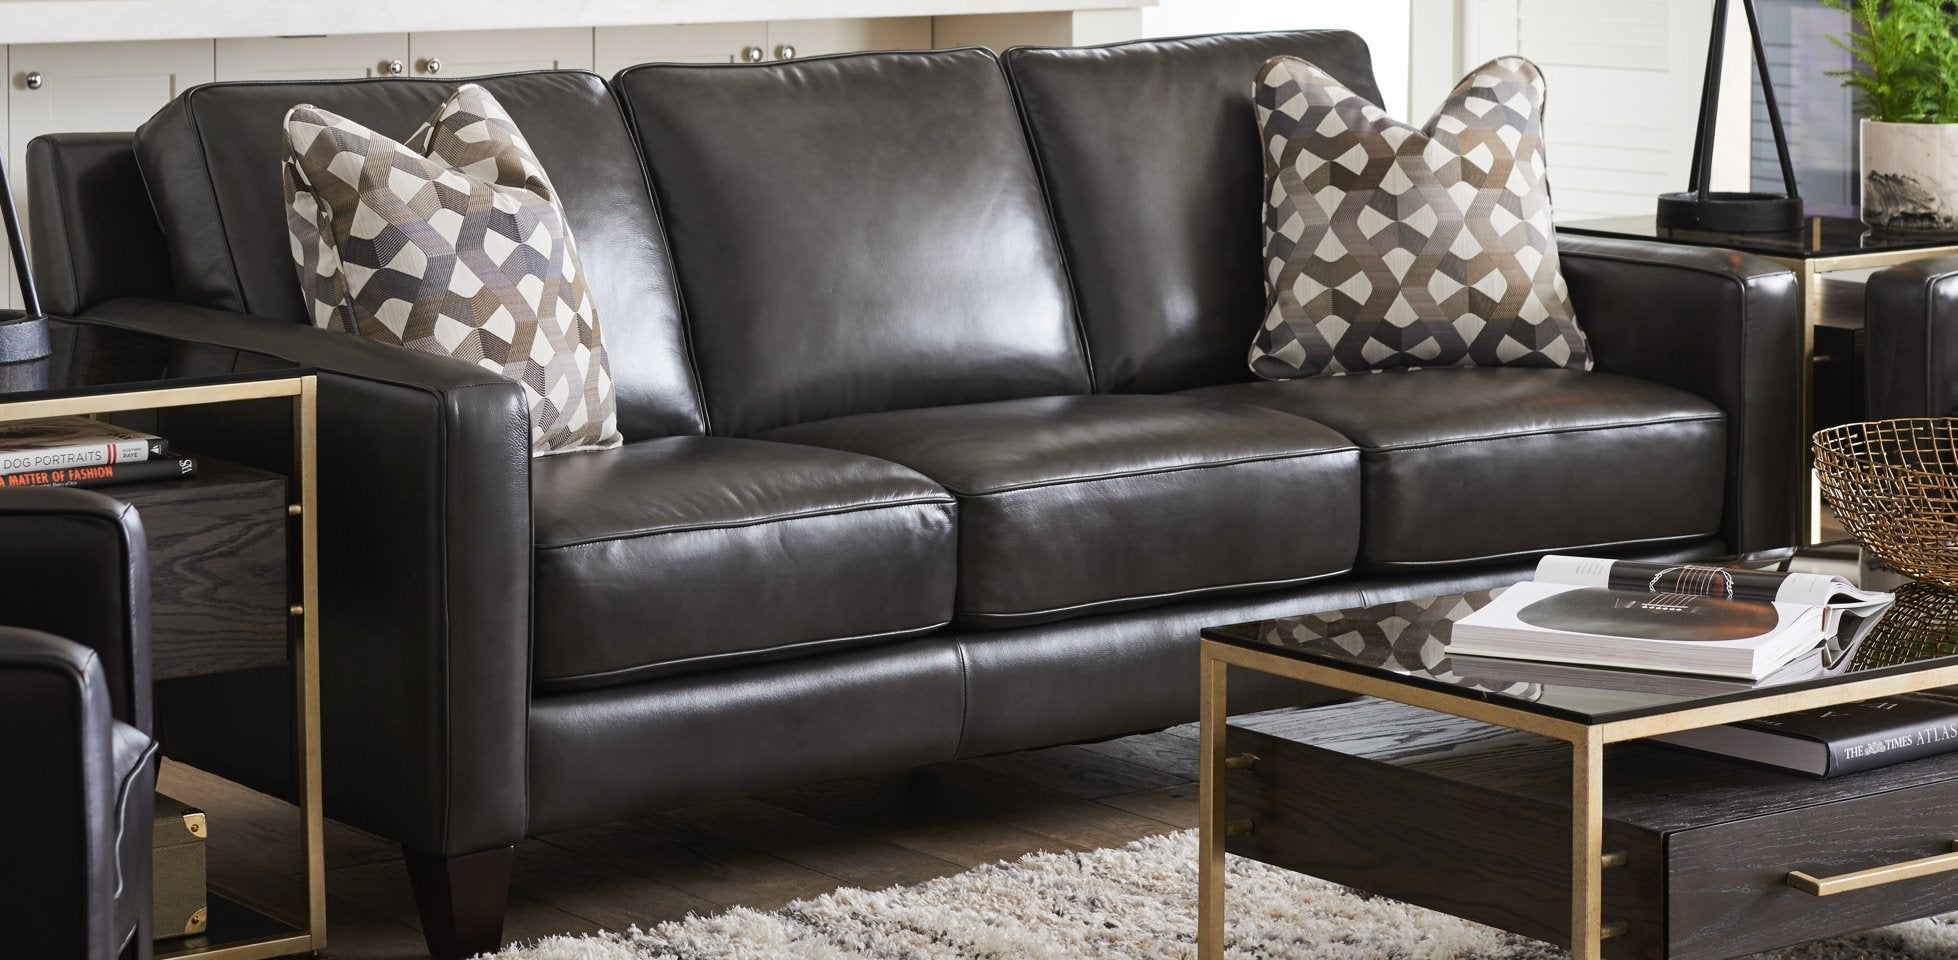 Living Room With Leather Meyer Premier Sofa